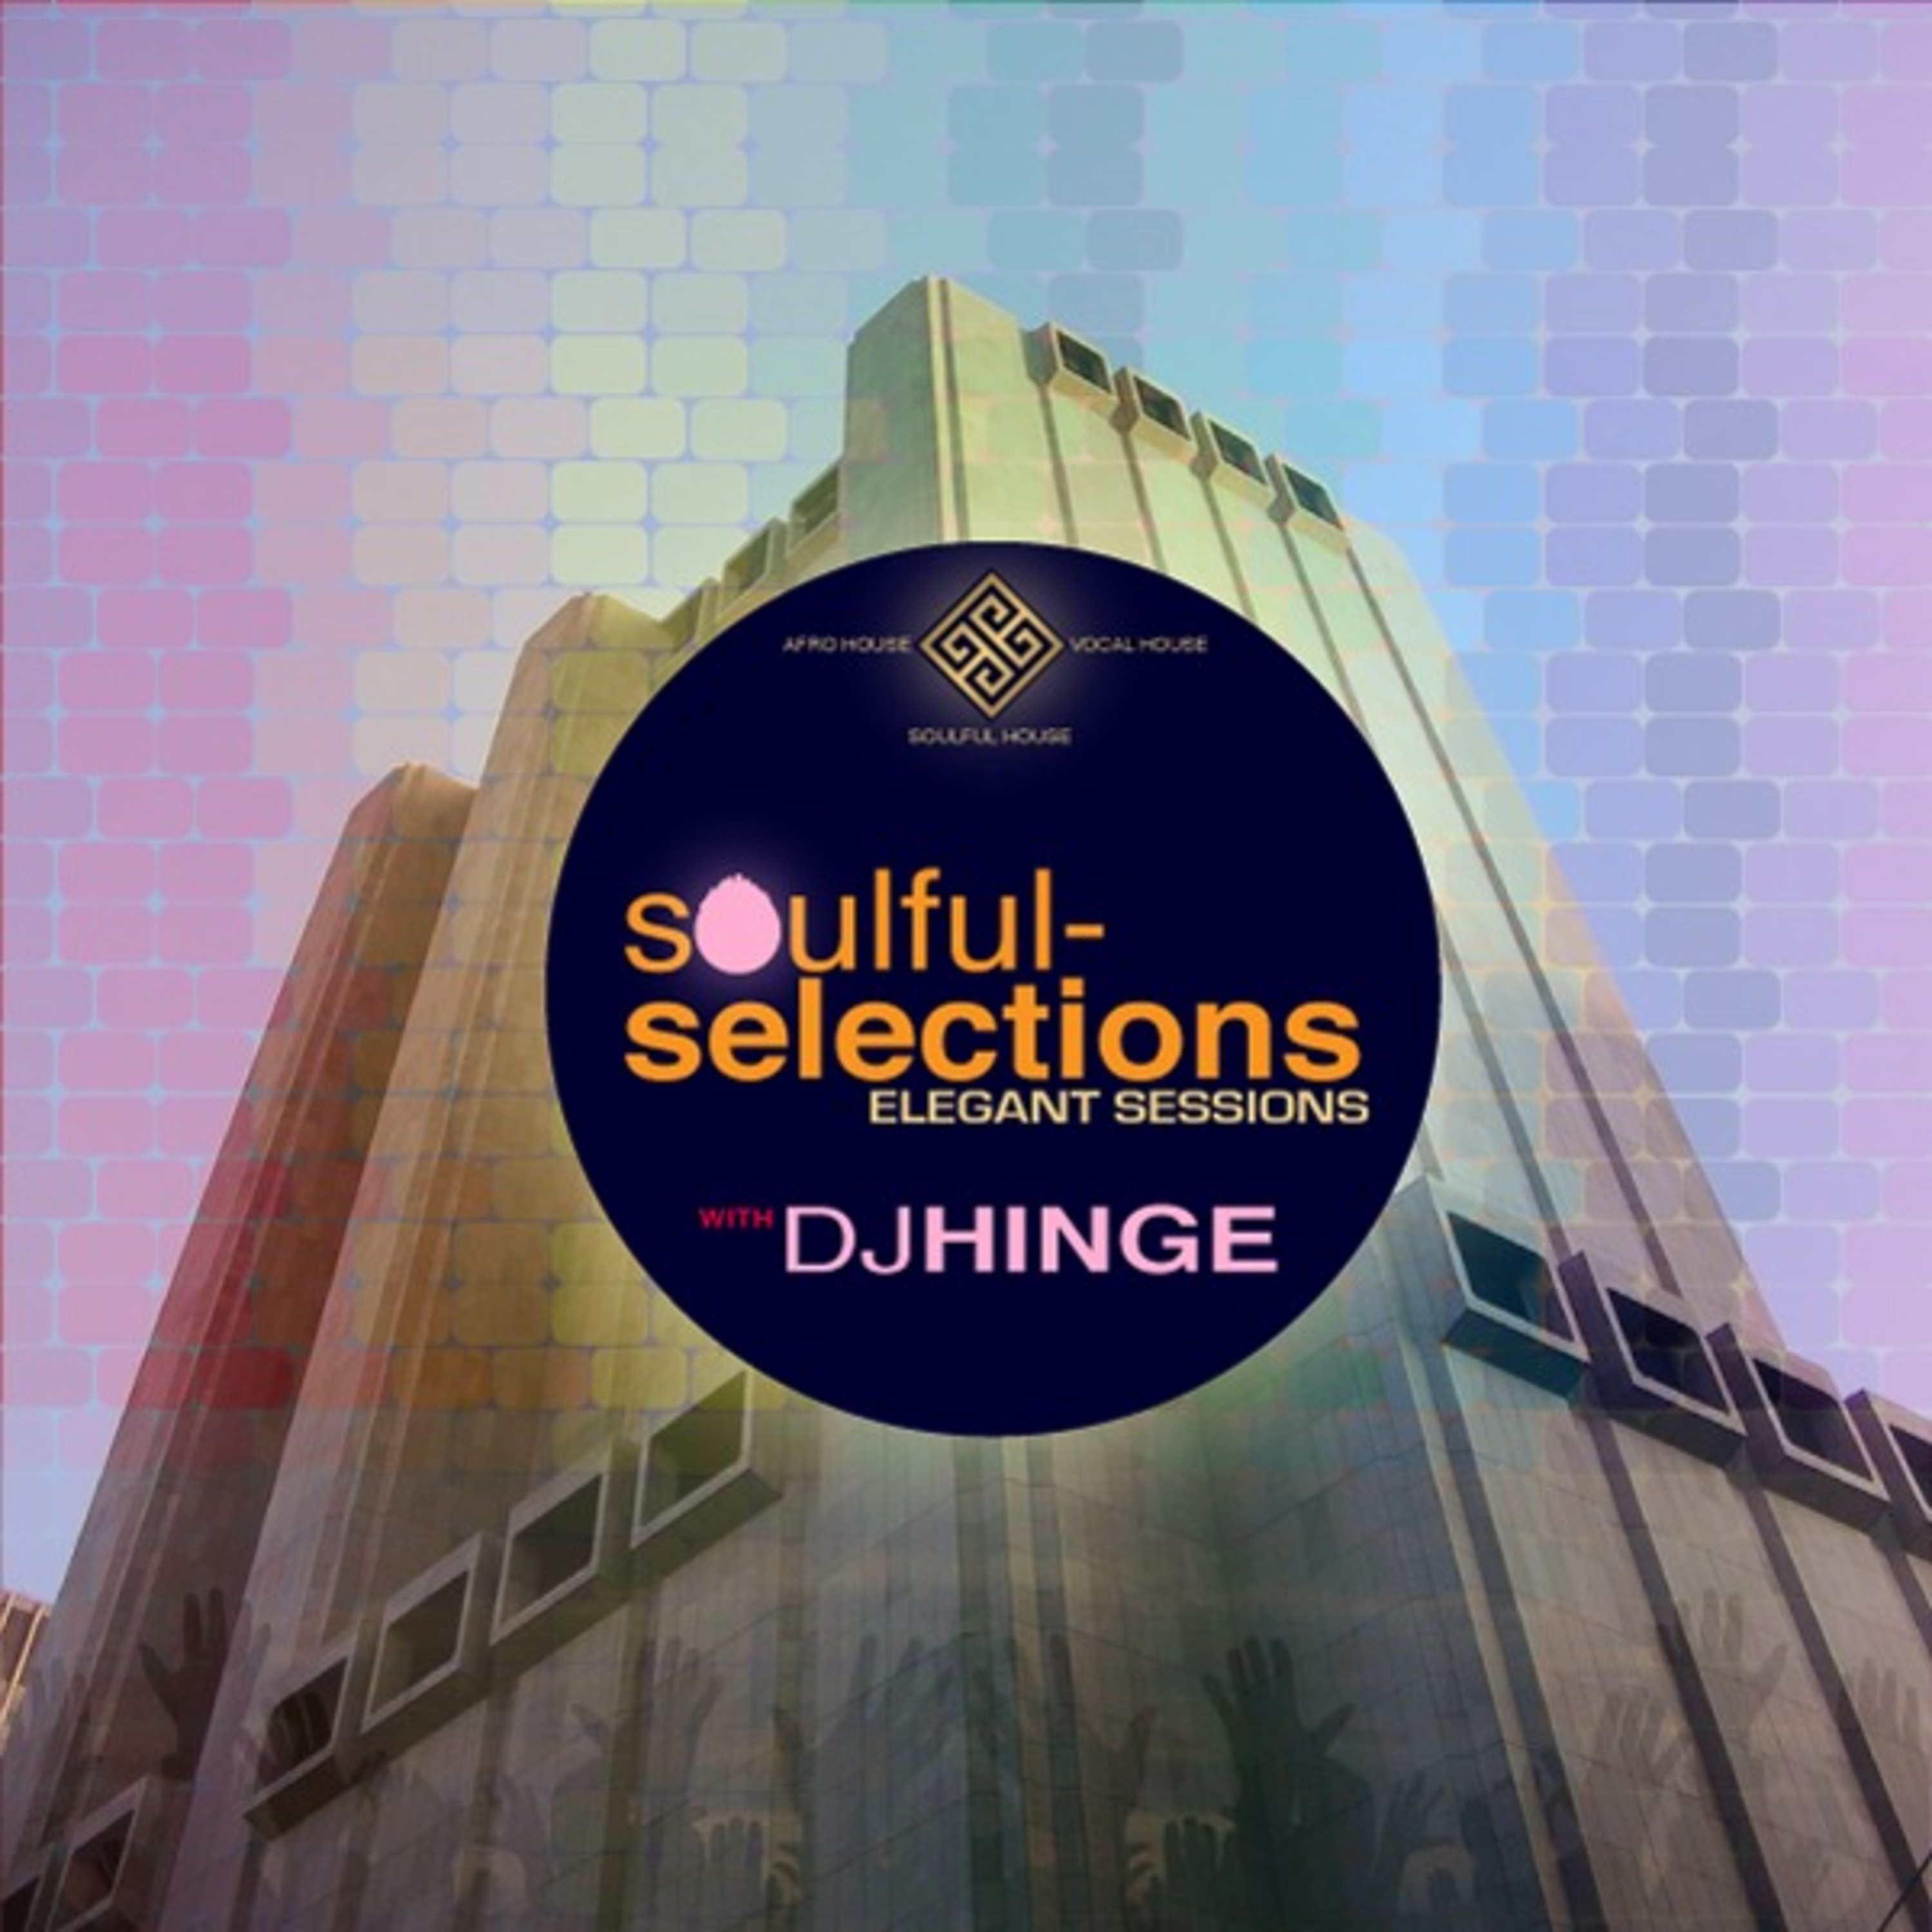 Episode 19: Soulful-Selections Elegant Session for 04-19-21